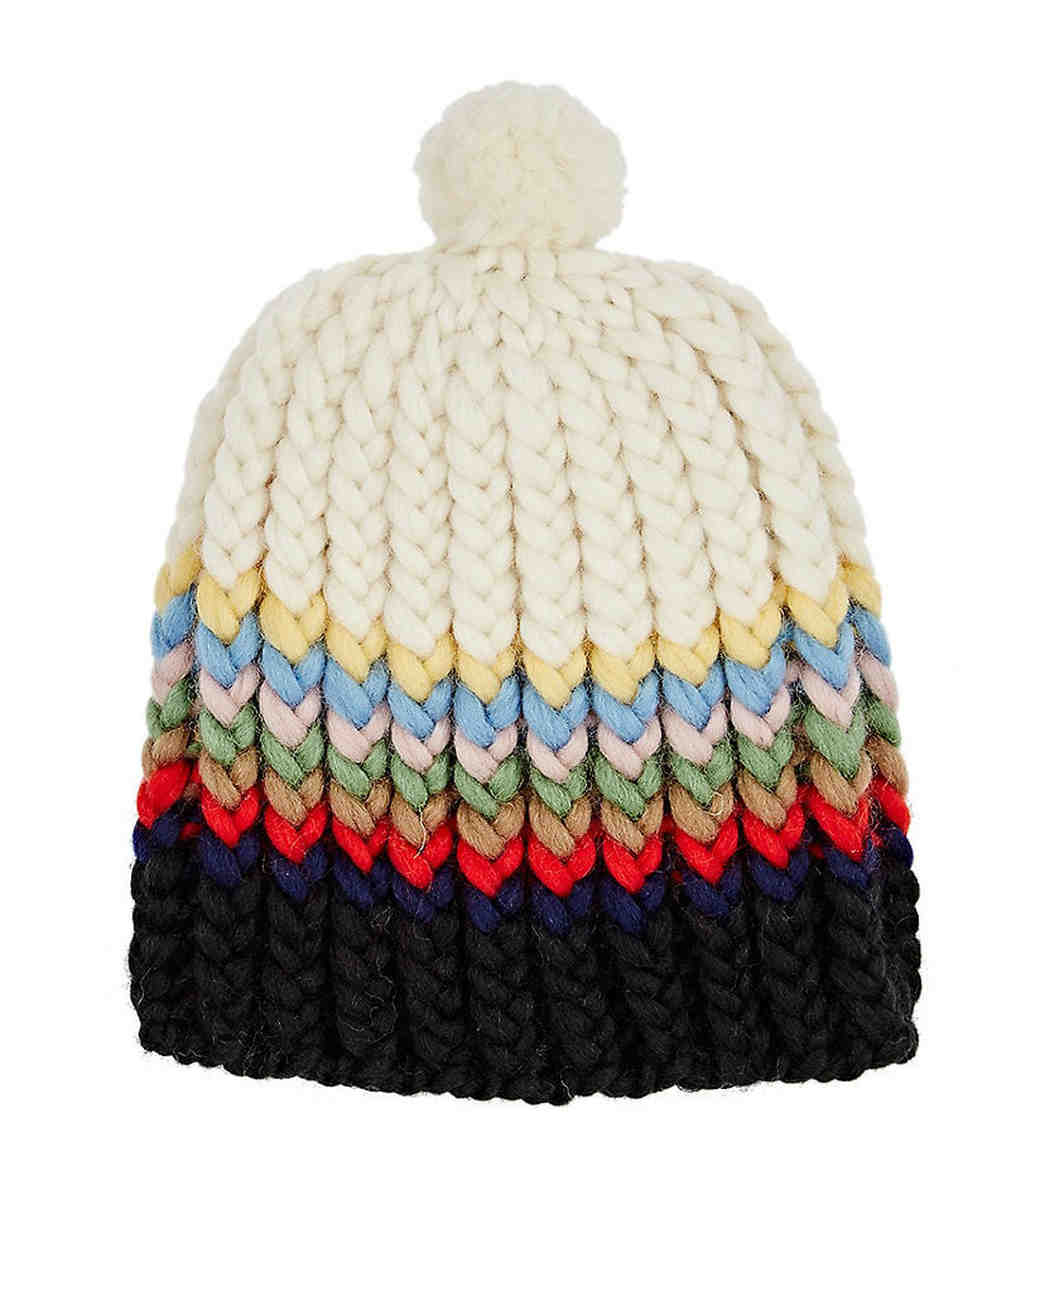 wool anniversary gift multi-color striped beanie hat